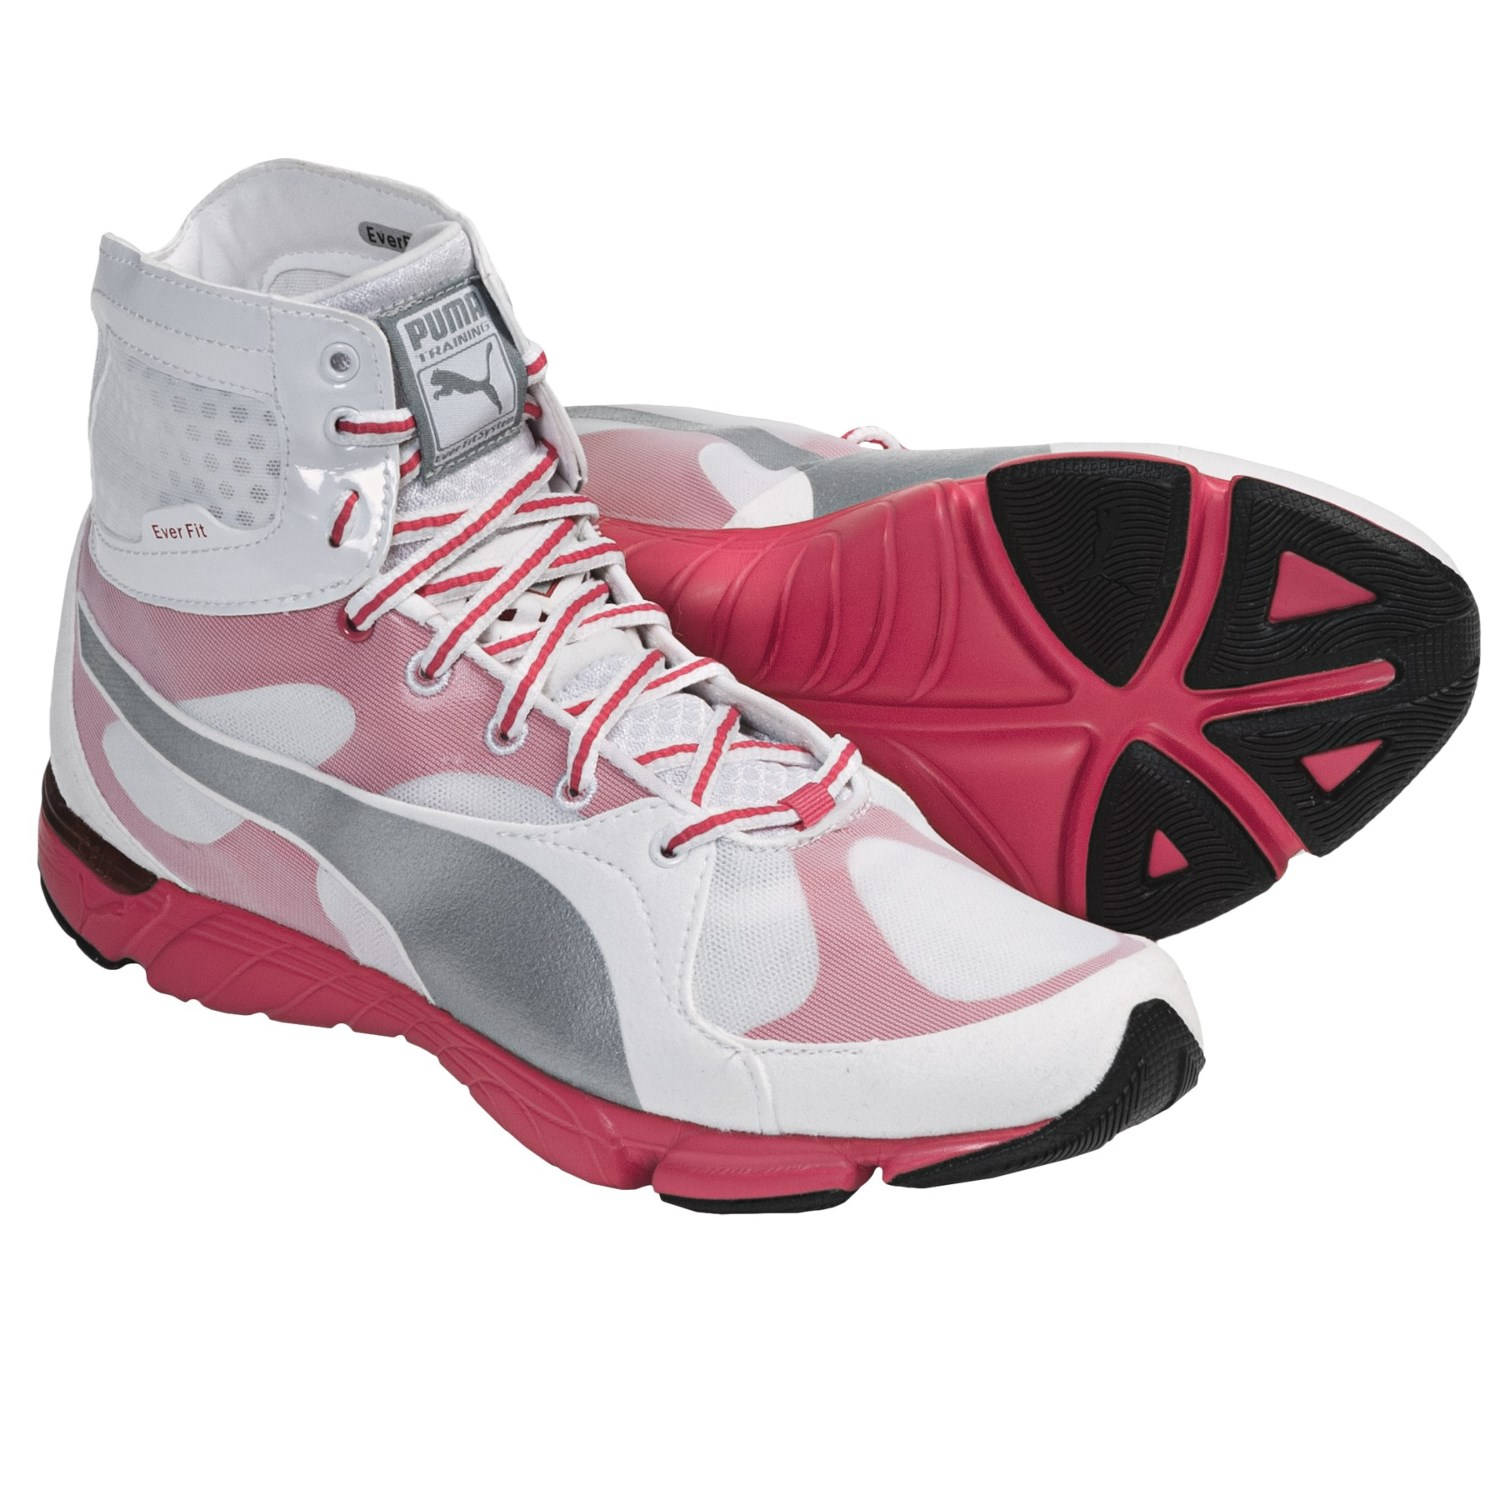 Coupons for puma shoes online